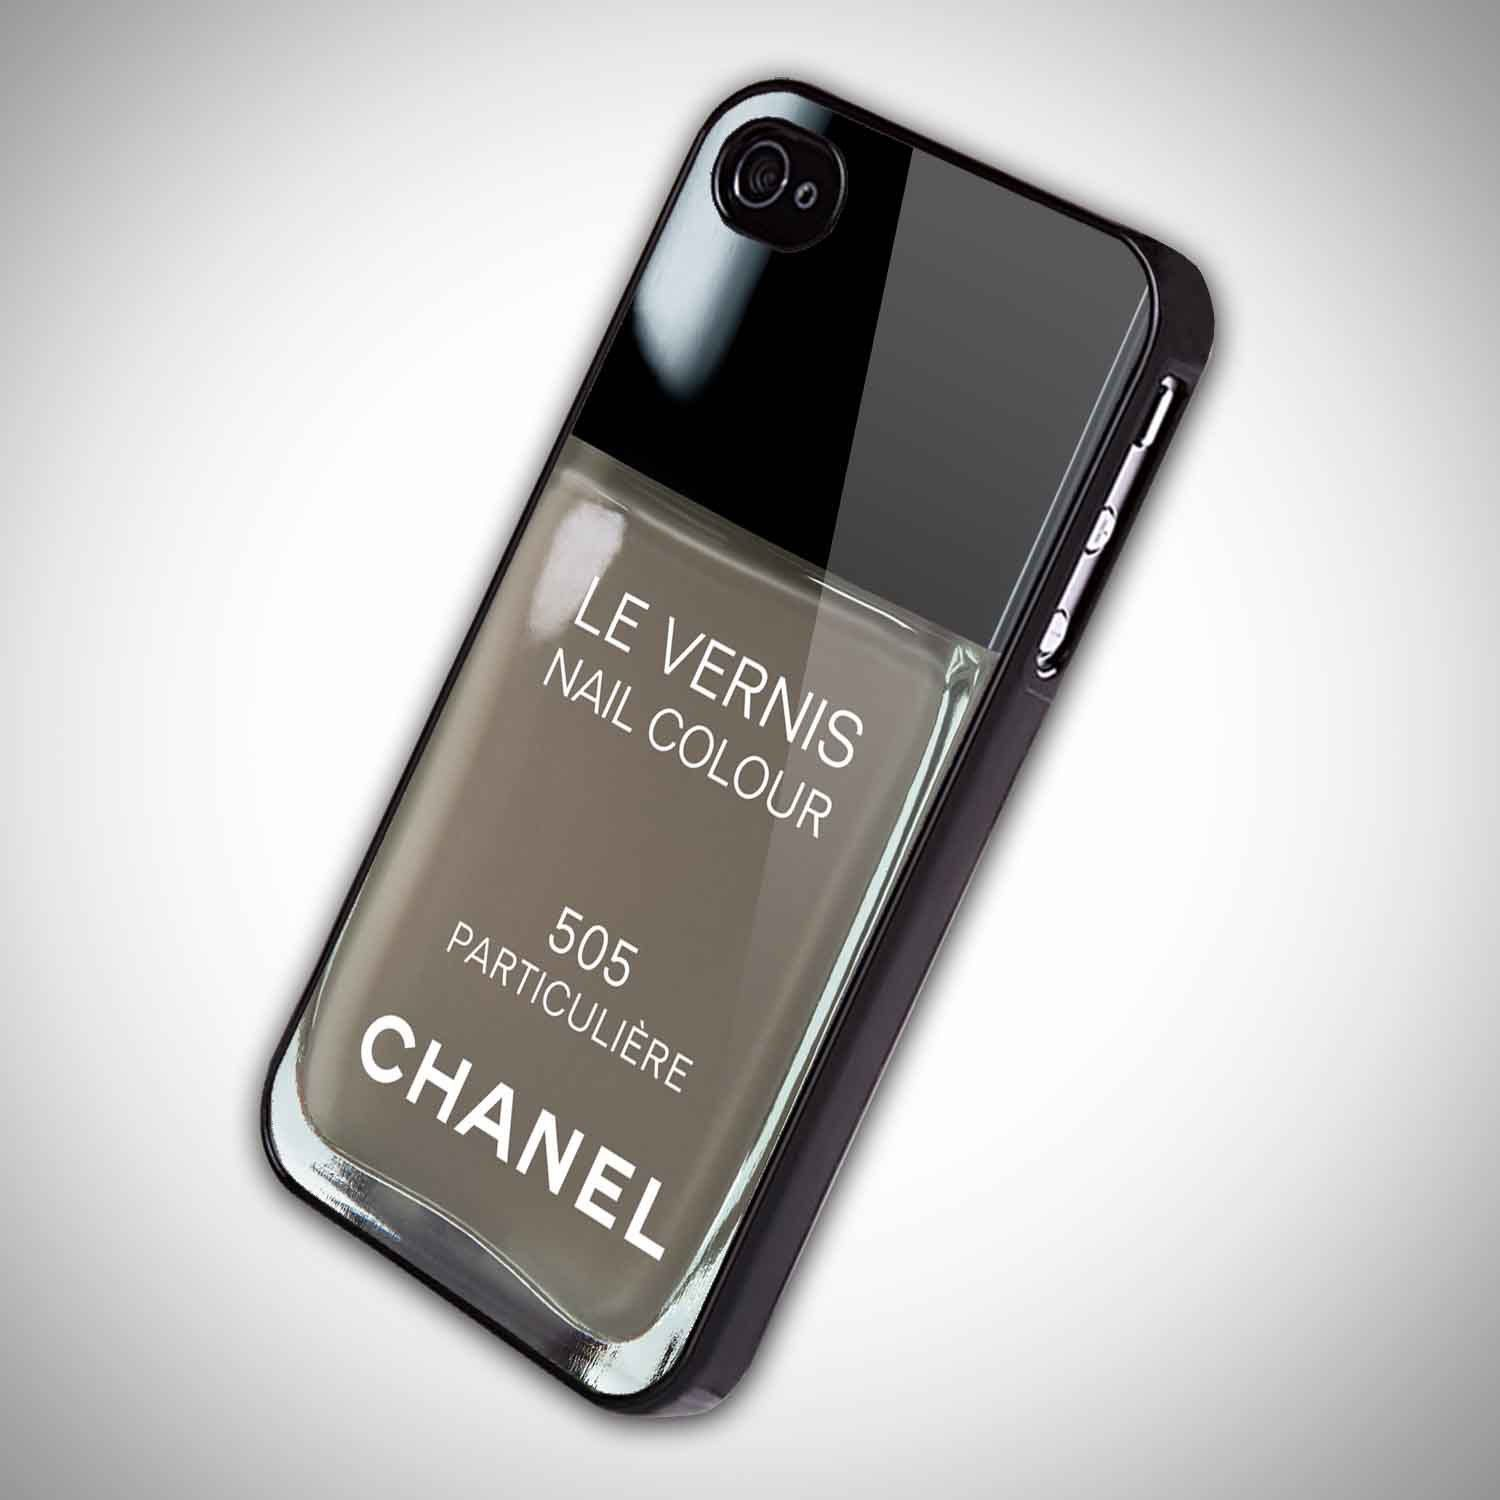 Chanel Nail Polish Particuliere iPhone 5 Case   My Style   Pinterest ...